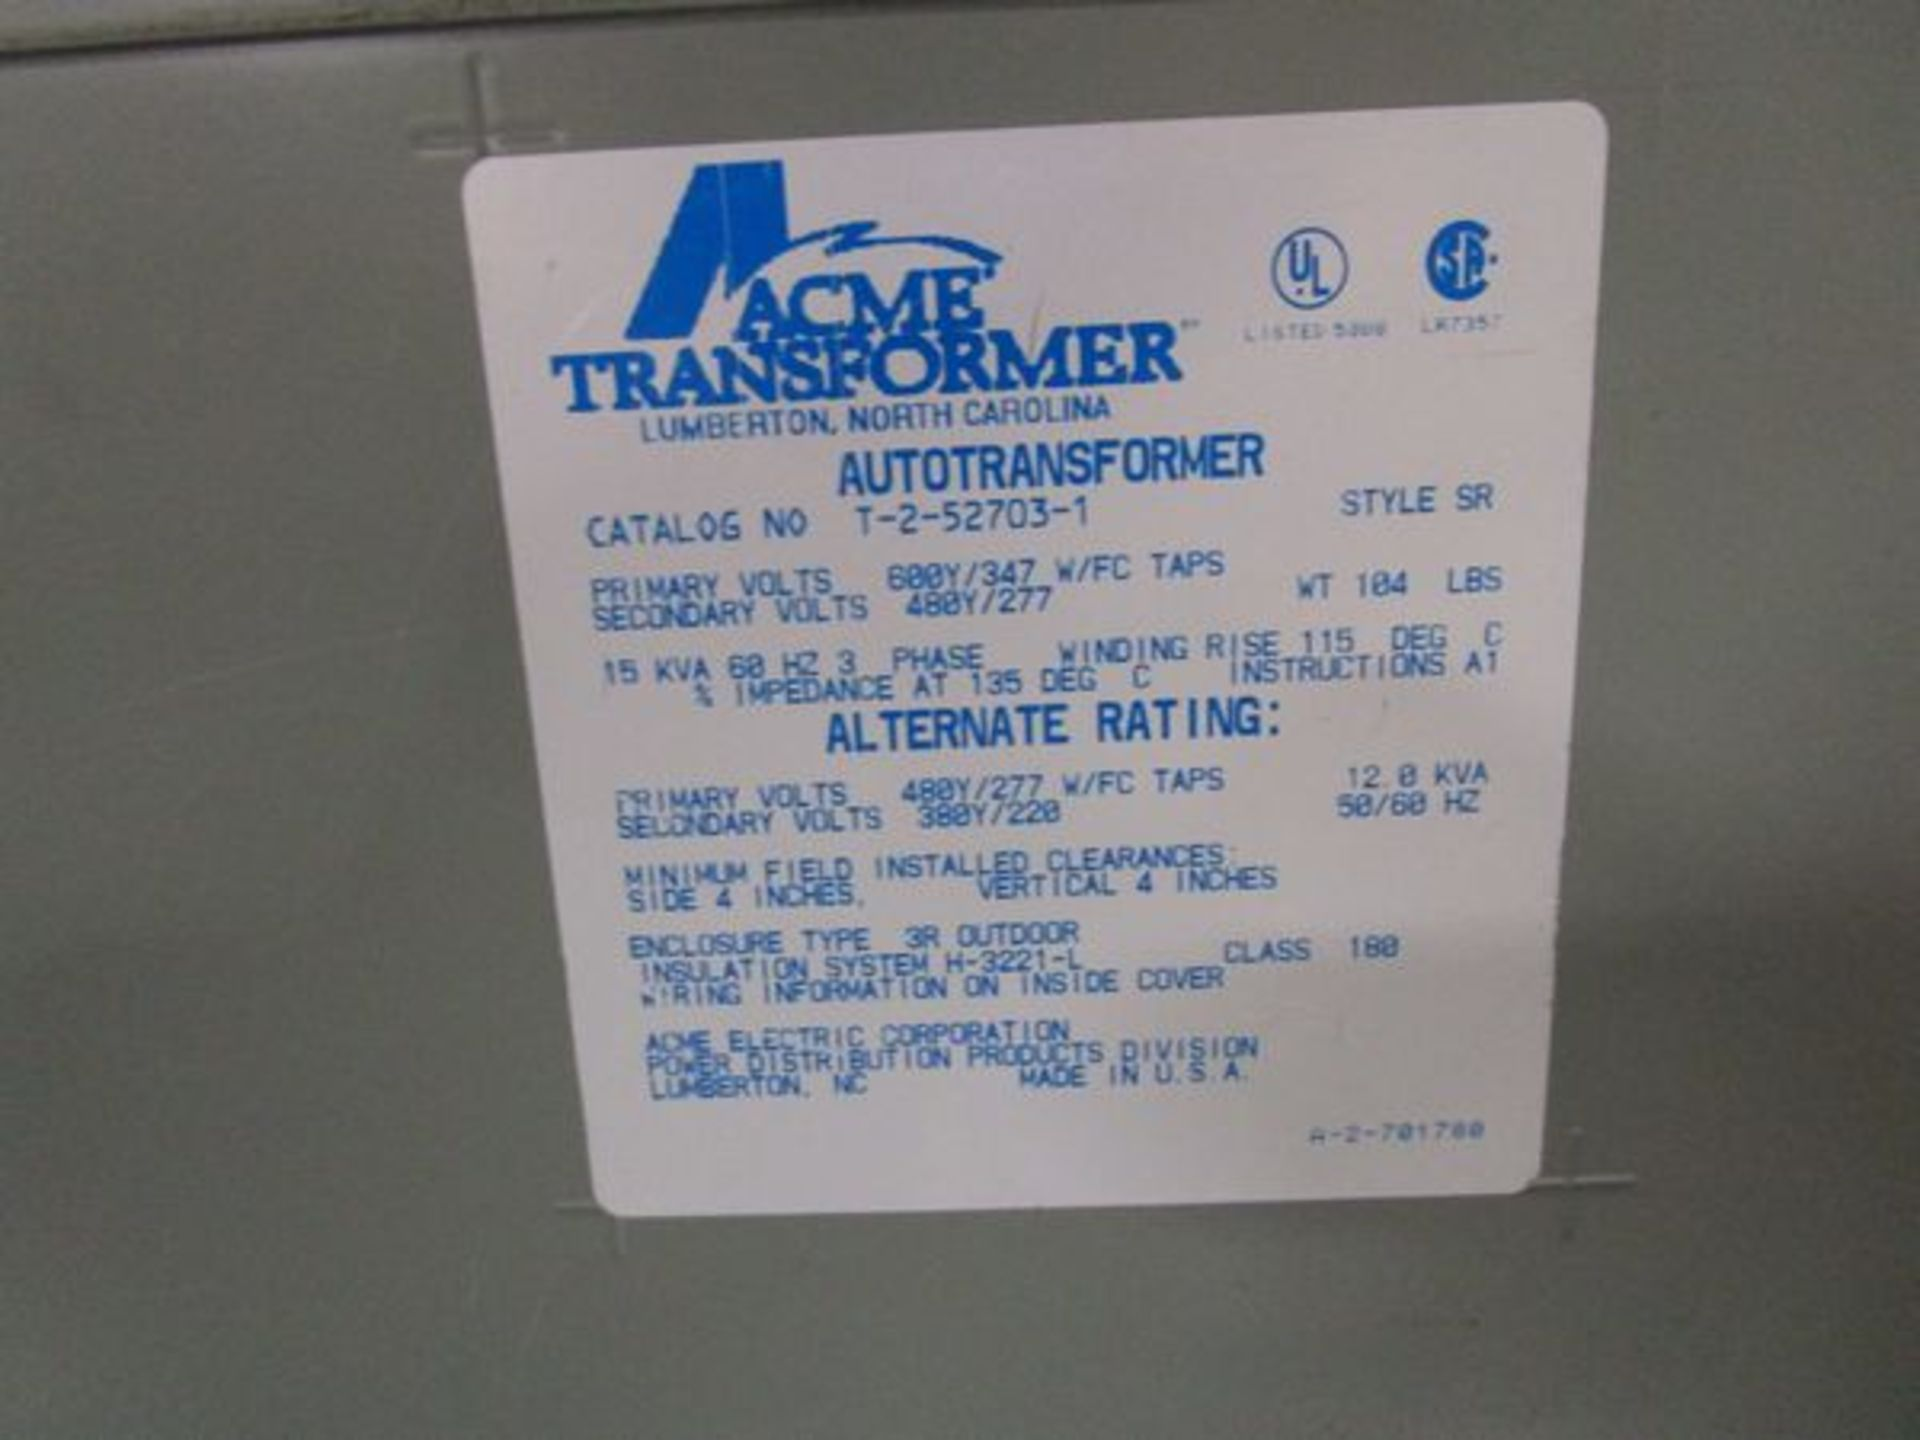 Lot GE HD Safety Switch, Acme T-252703-1 Autotransformer, Acme T-2A-52717-1 Transformer - Image 5 of 6